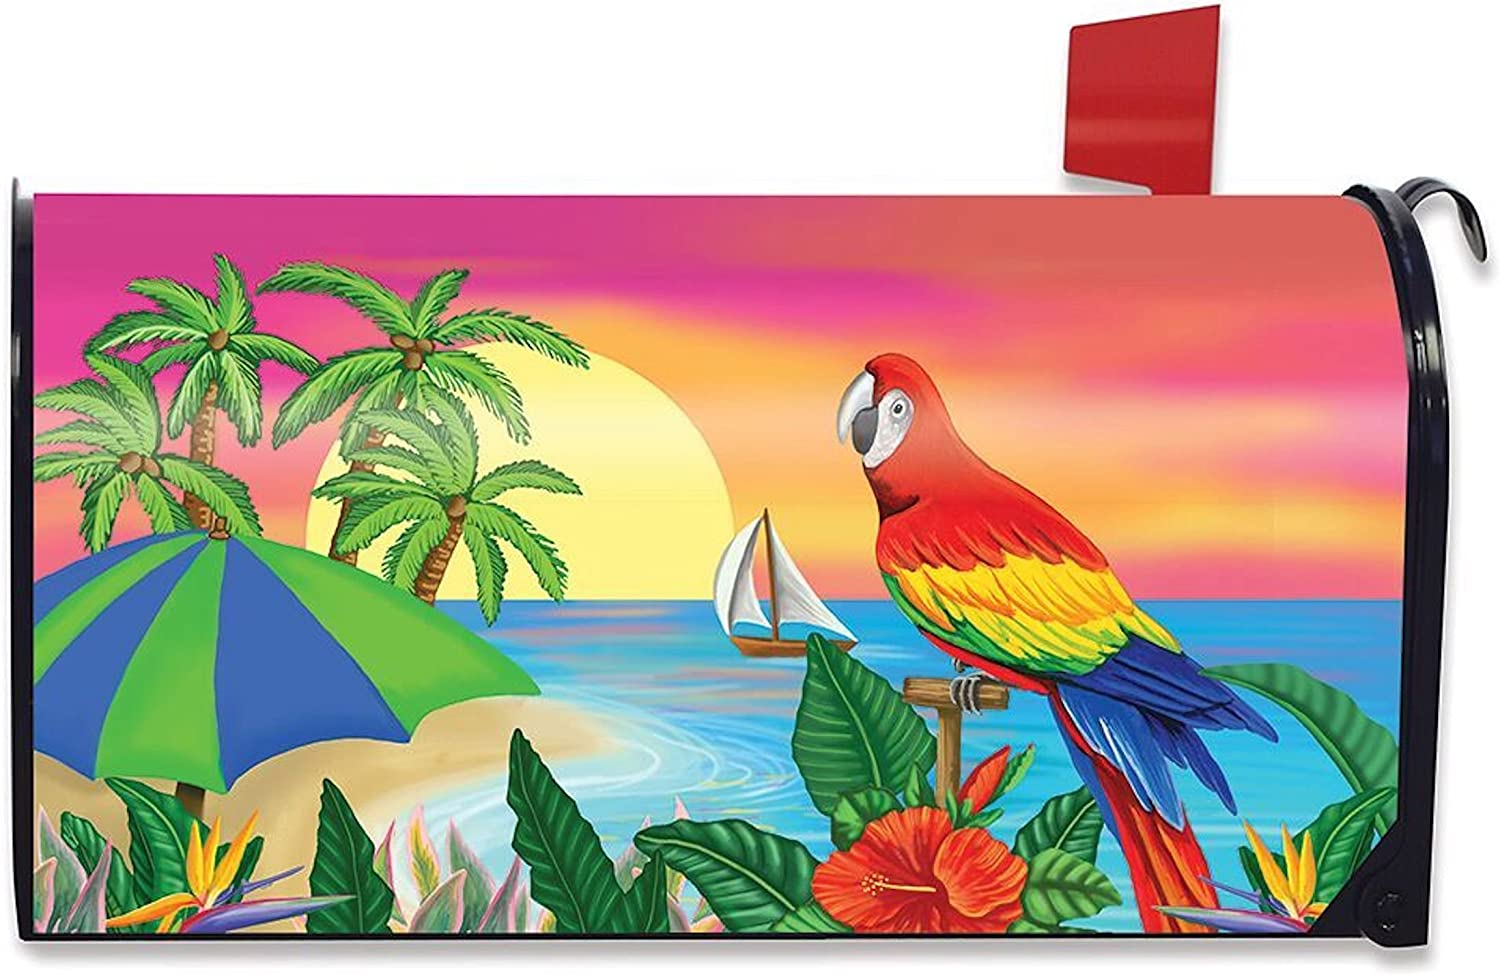 5 O/'clock Parrot Summer Magnetic Mailbox Cover Tropical Beach Humor Standard